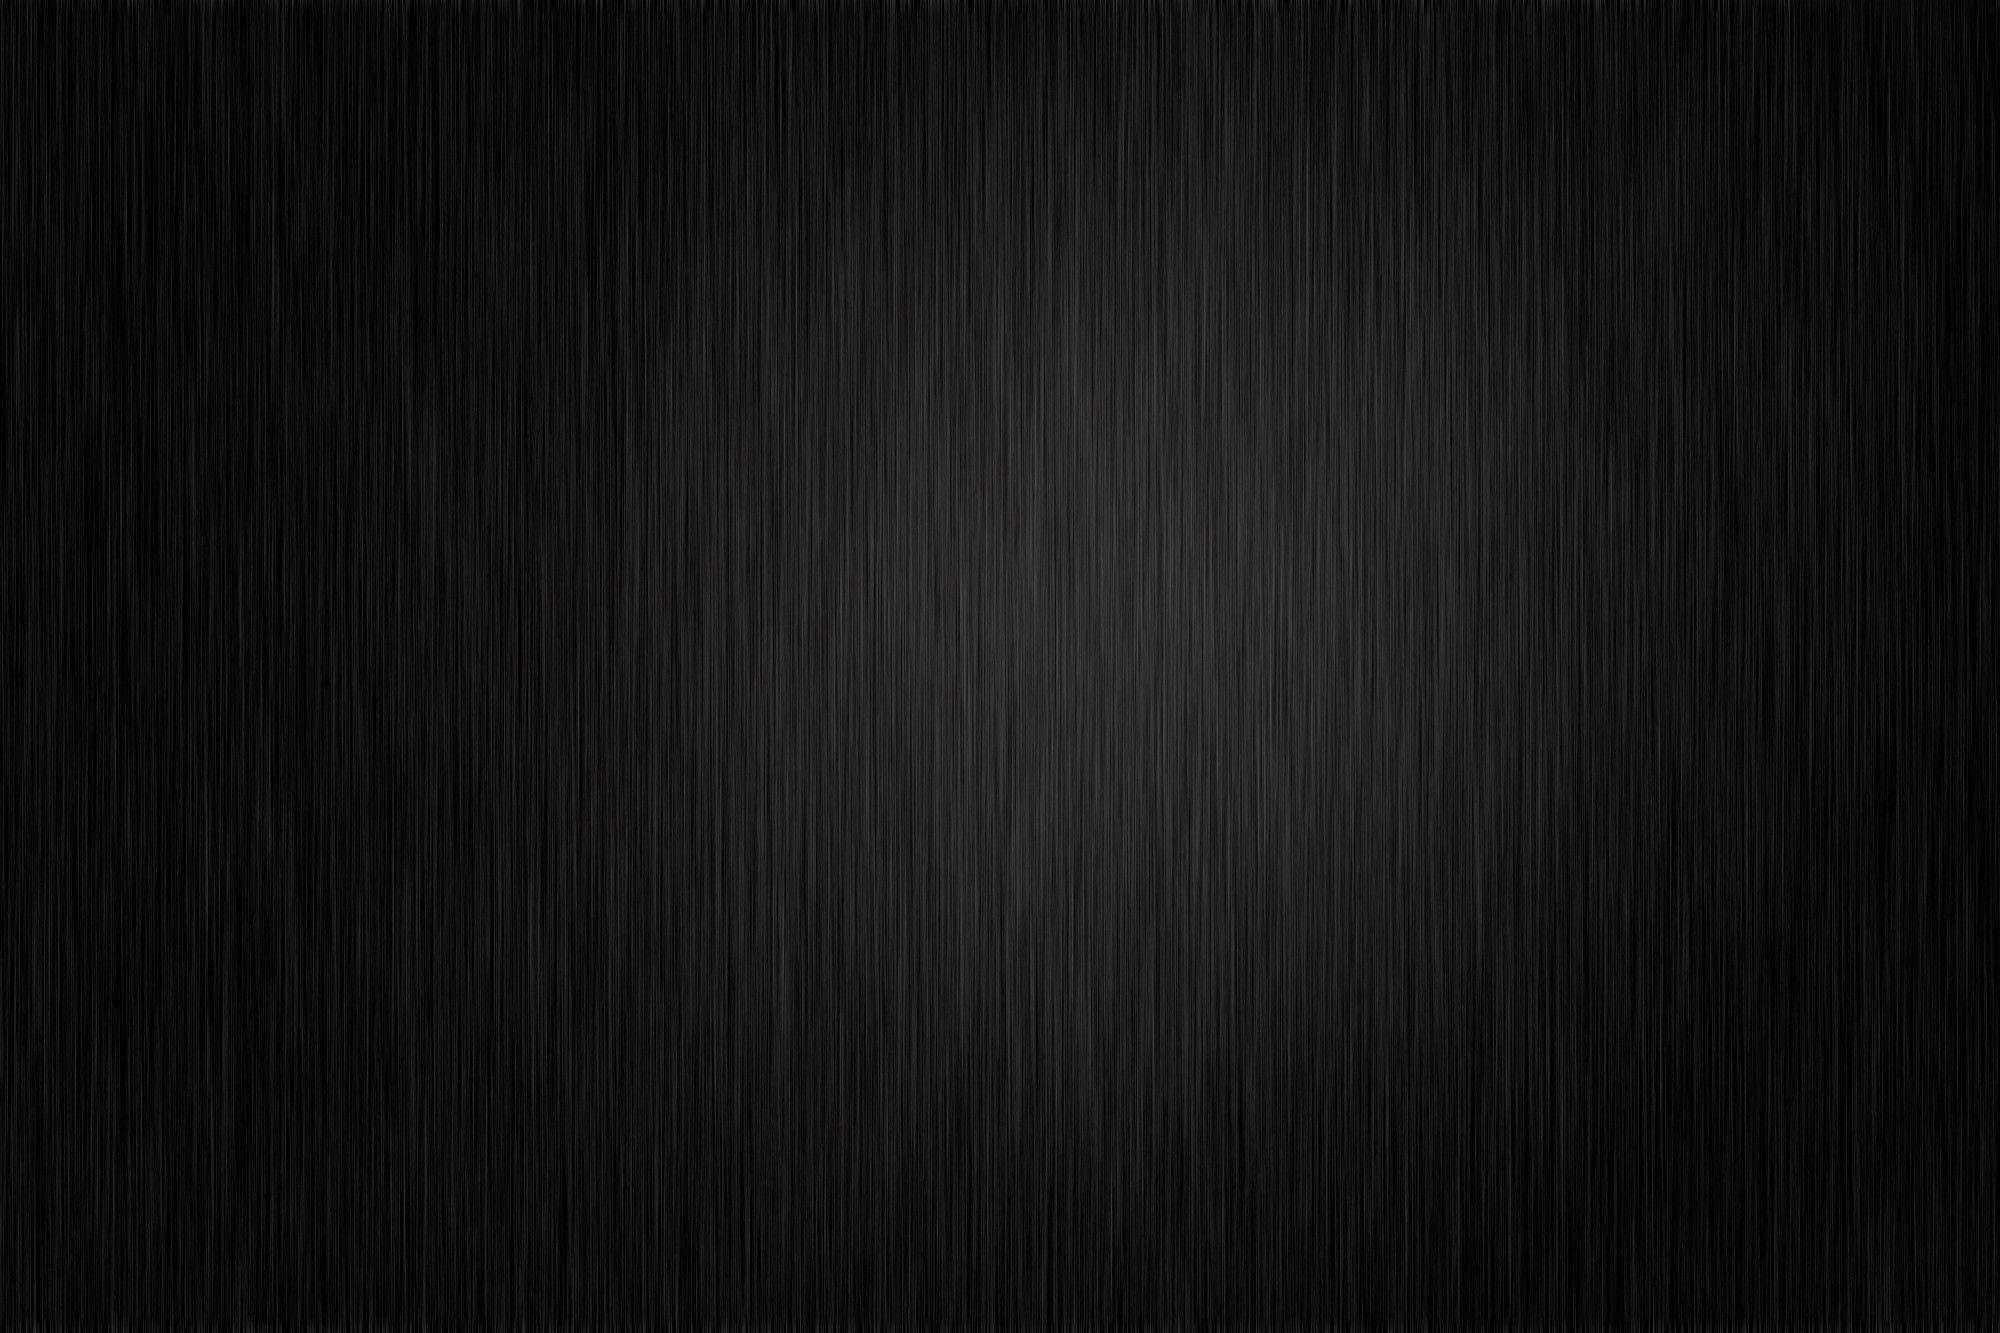 Black And White Backgrounds Wallpaper Cave